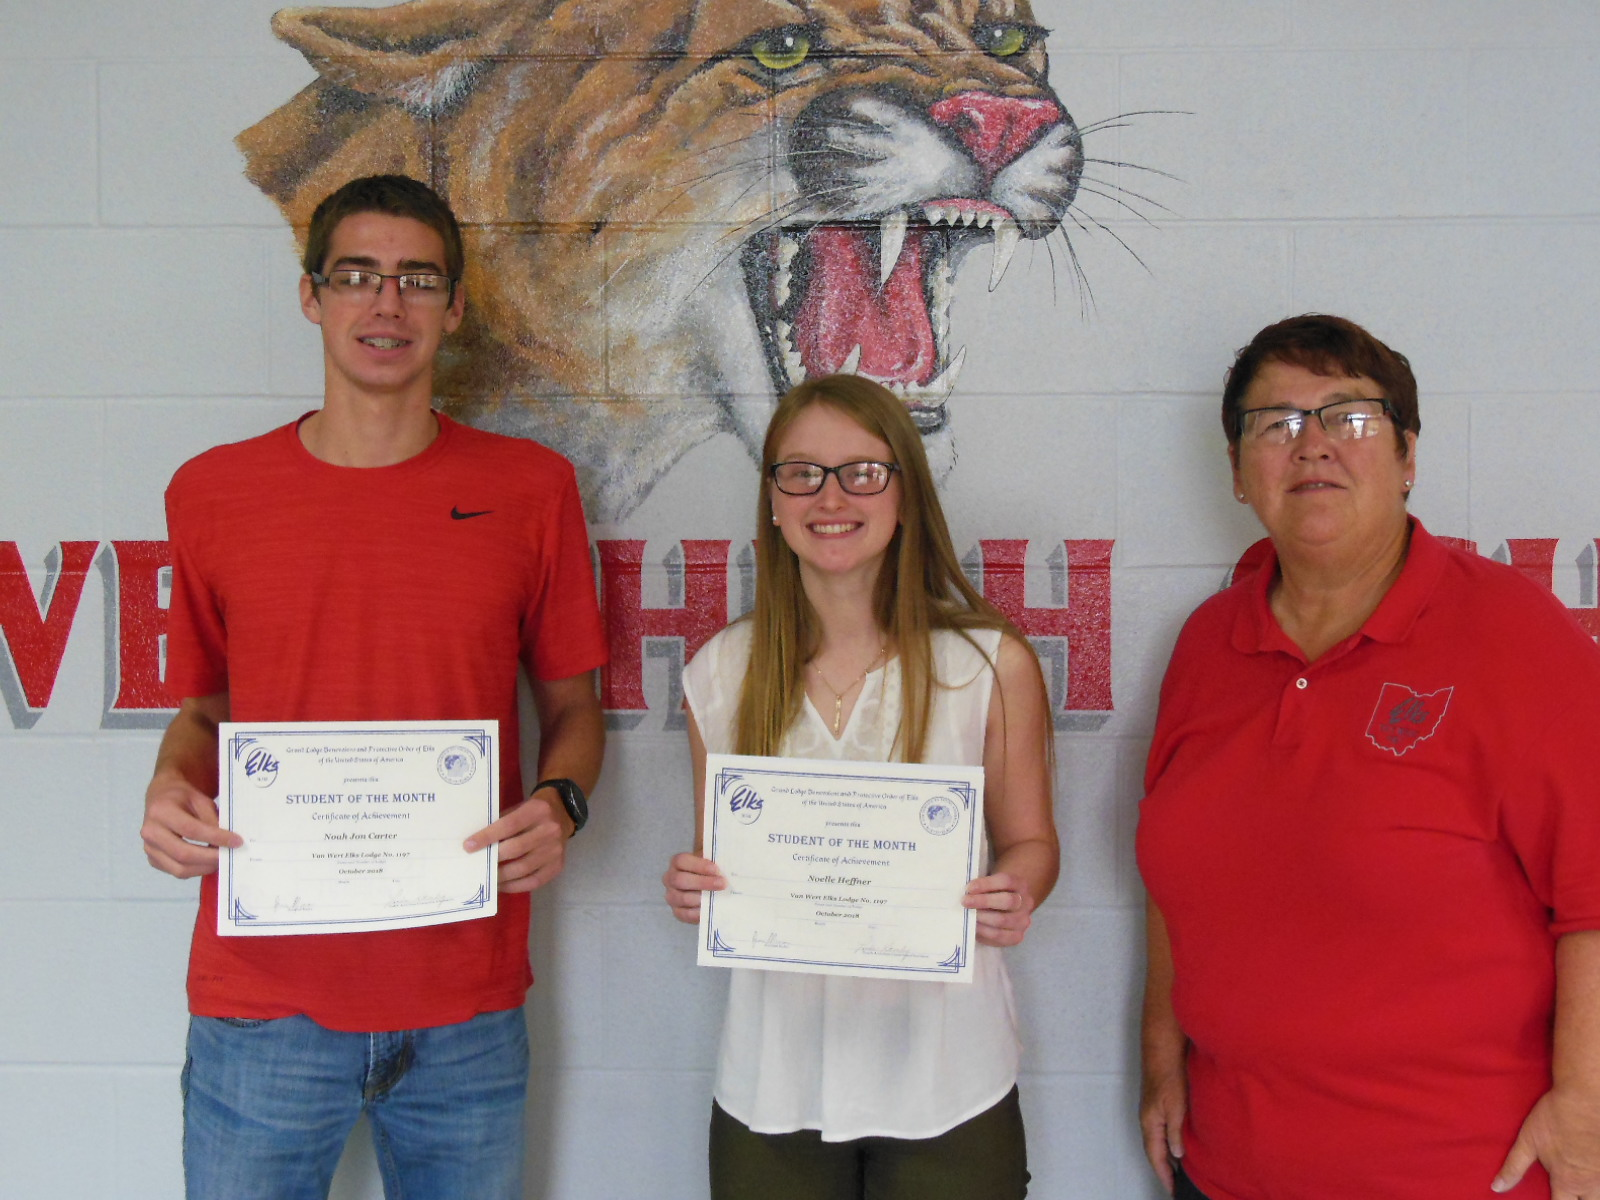 Pictured left to right are: Noah Carter and Noelle Heffner with Linda J. Stanley, Student of the Month Chairperson.